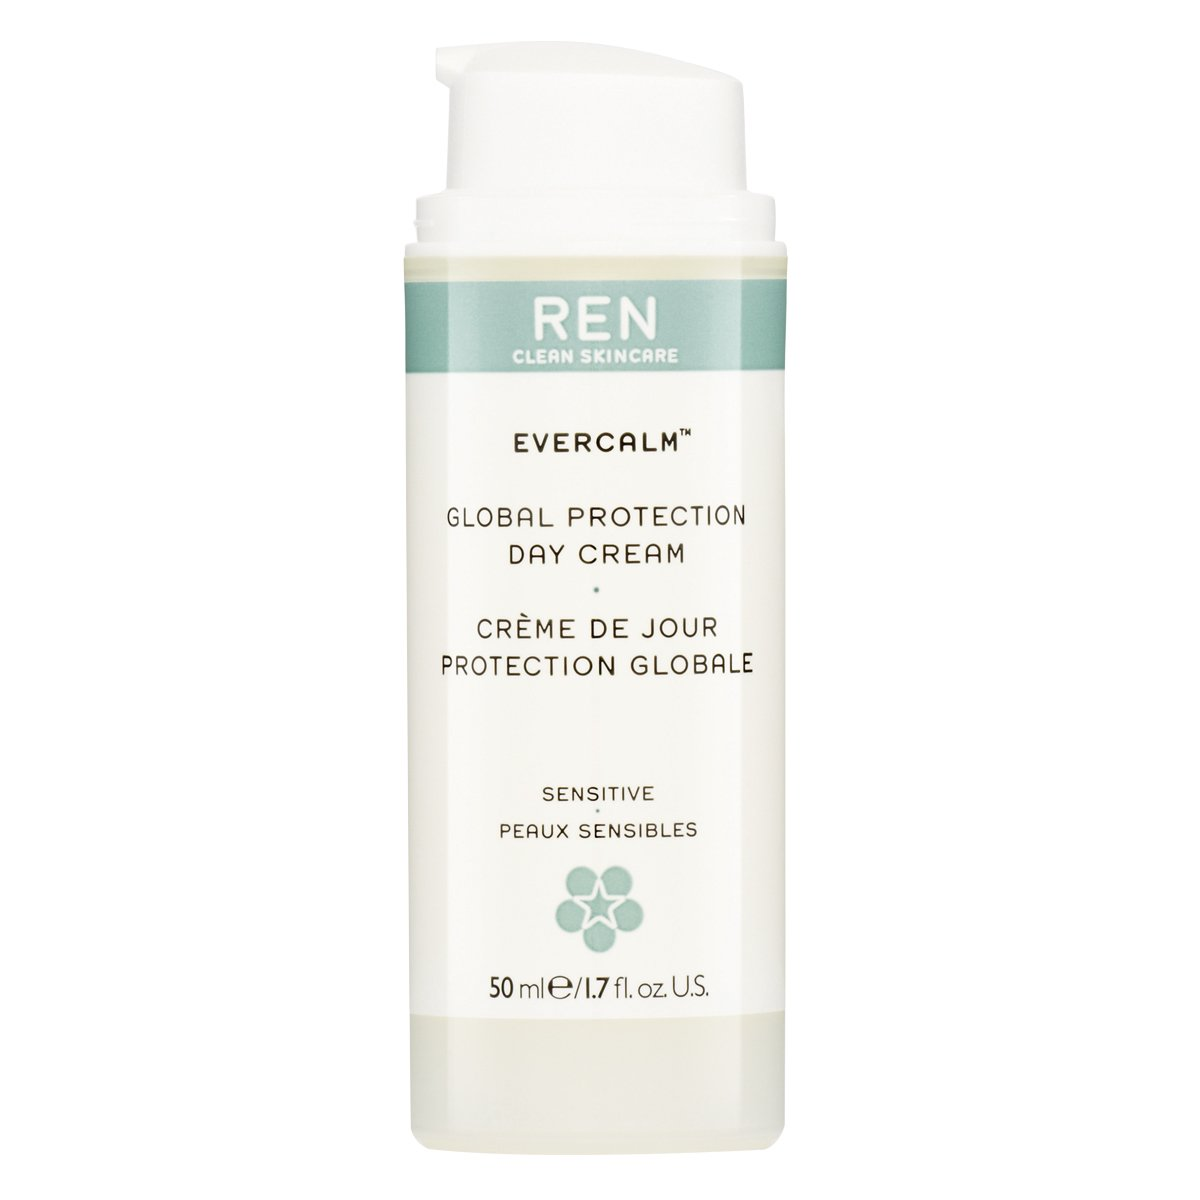 Ren Clean Skincare evercalm global protection day cream, 50ml U-SC-3674 28003706